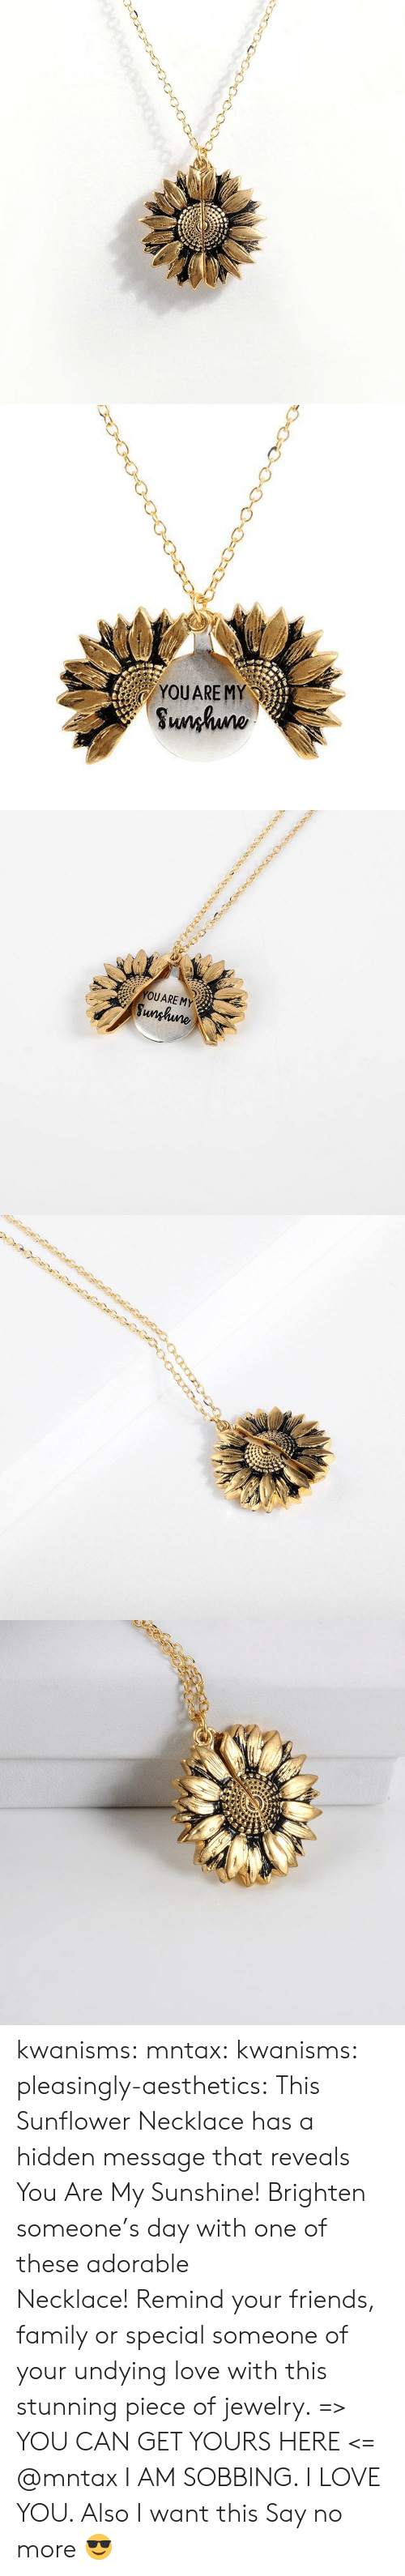 Family, Friends, and Love: YOUARE MY  Sunhuno   YOUARE MY  Sunghune kwanisms:  mntax:  kwanisms:  pleasingly-aesthetics:  This Sunflower Necklace has a hidden message that reveals You Are My Sunshine! Brighten someone's day with one of these adorable Necklace! Remind your friends, family or special someone of your undying love with this stunning piece of jewelry. => YOU CAN GET YOURS HERE <=   @mntax   I AM SOBBING. I LOVE YOU. Also I want this  Say no more 😎